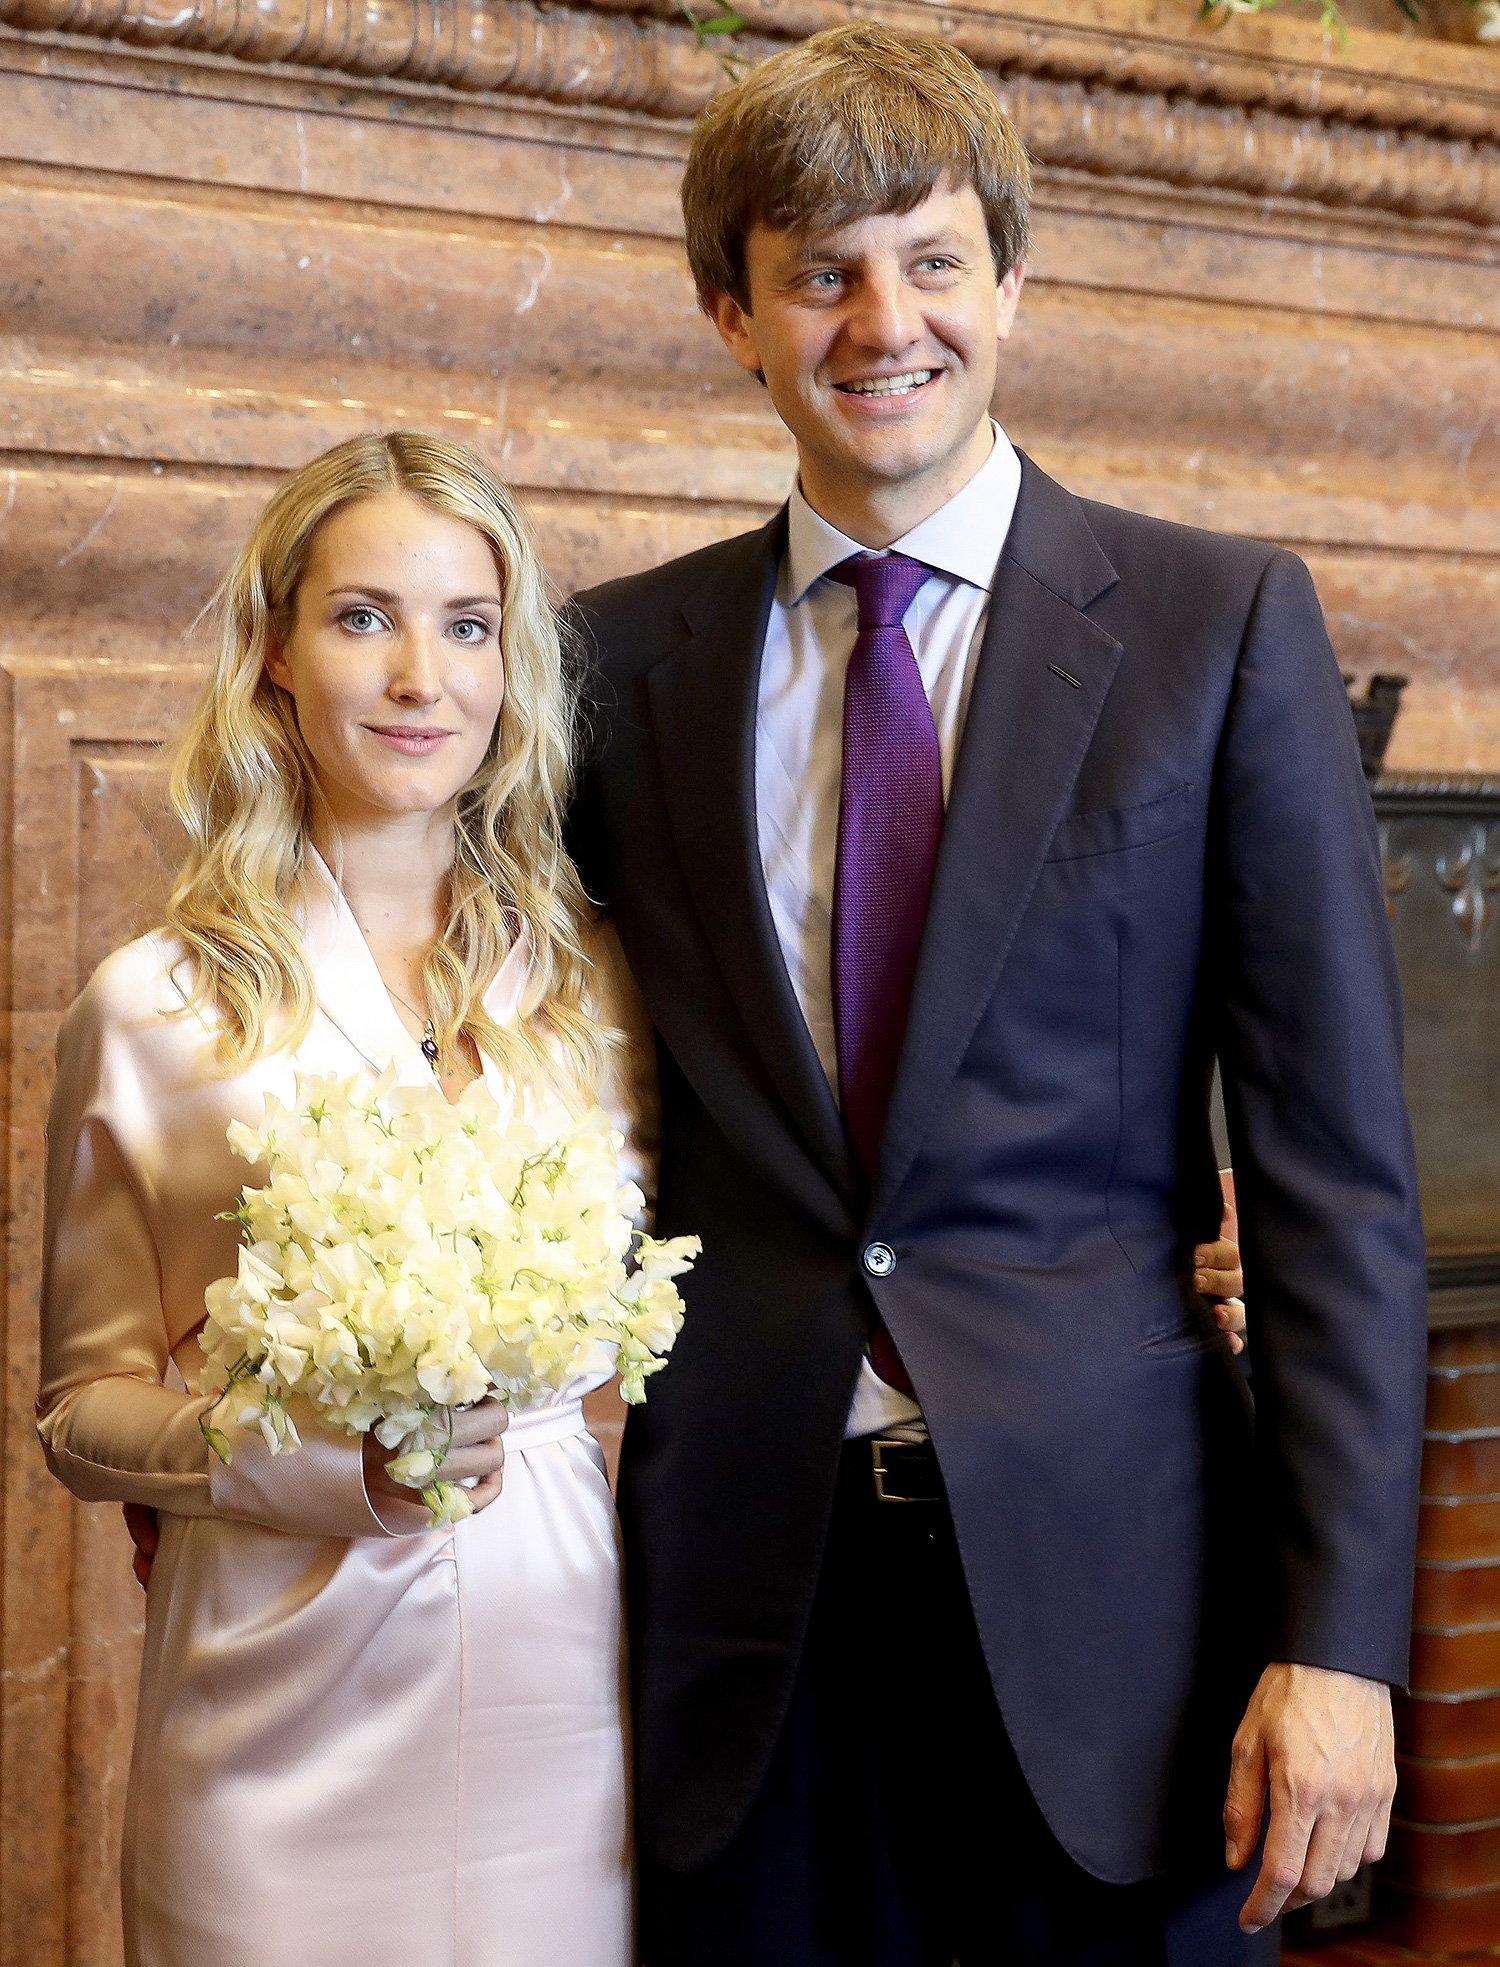 Civil wedding of hereditary Prince Ernst August Jr. of Hanover